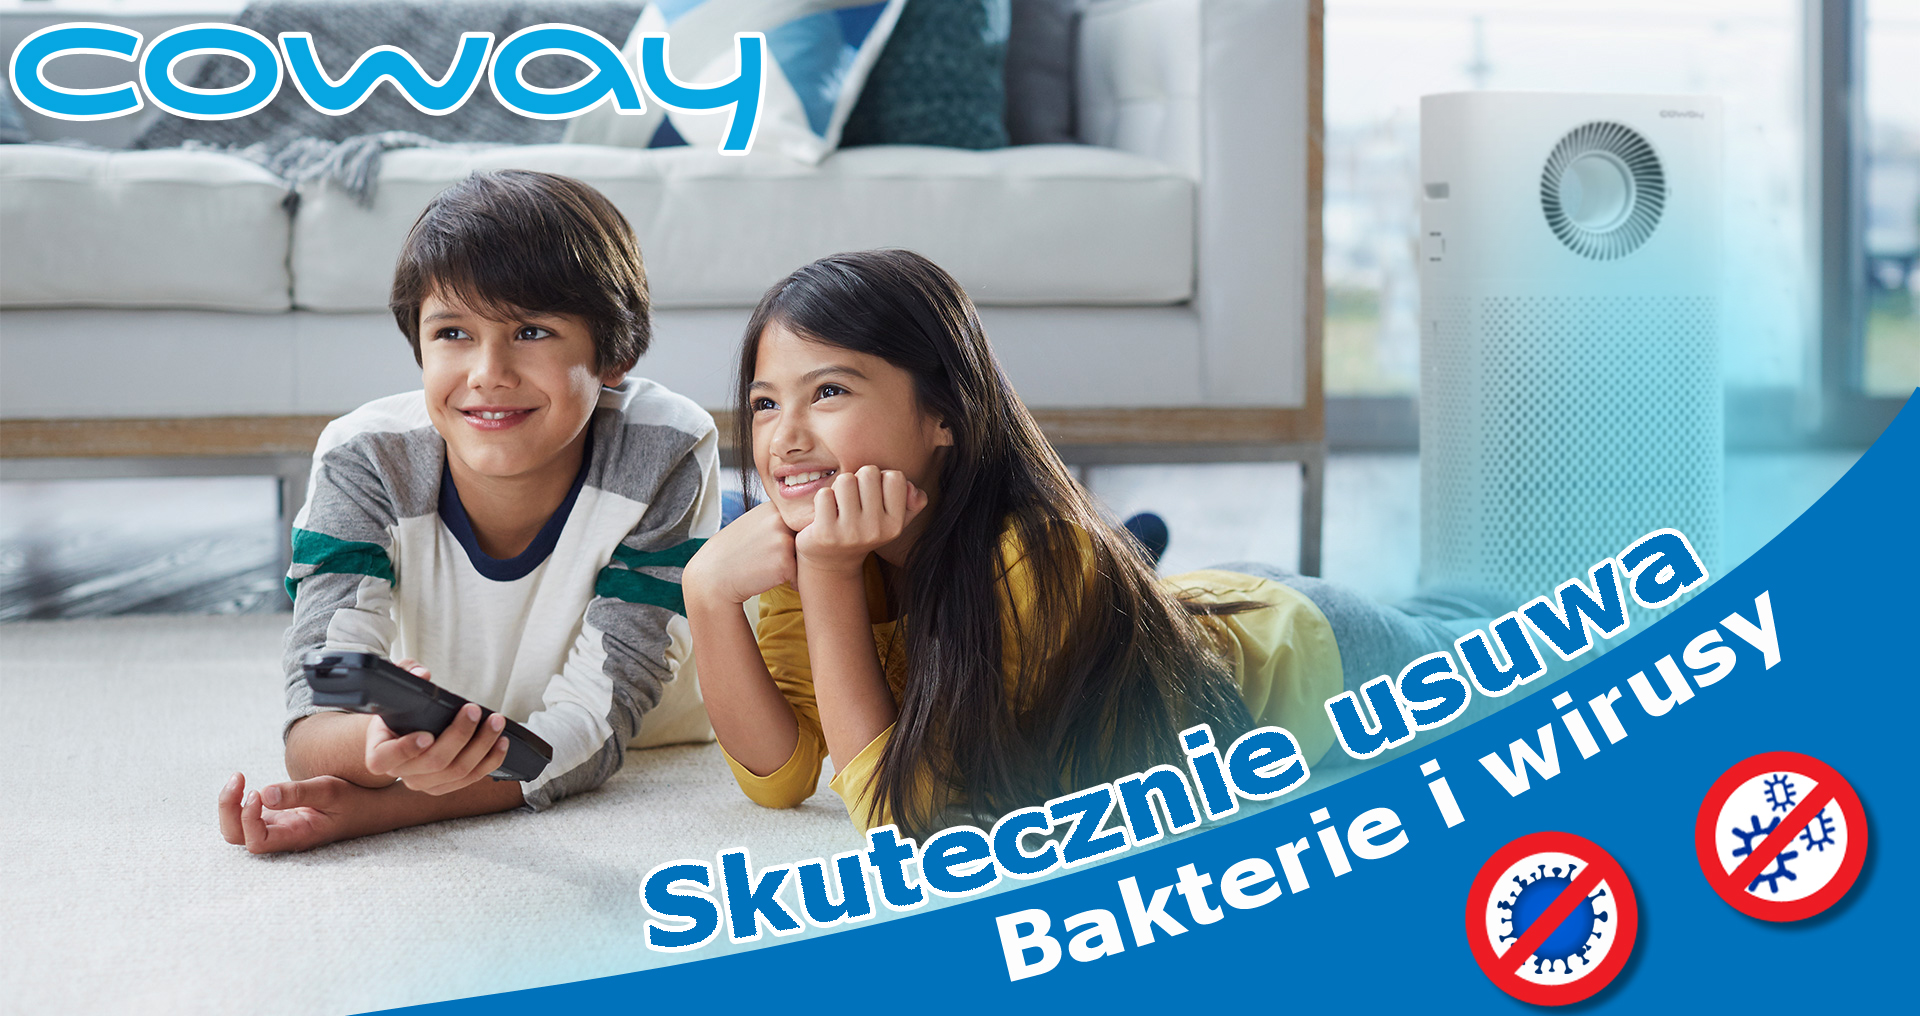 Coway Storm na wirusy i bakterie